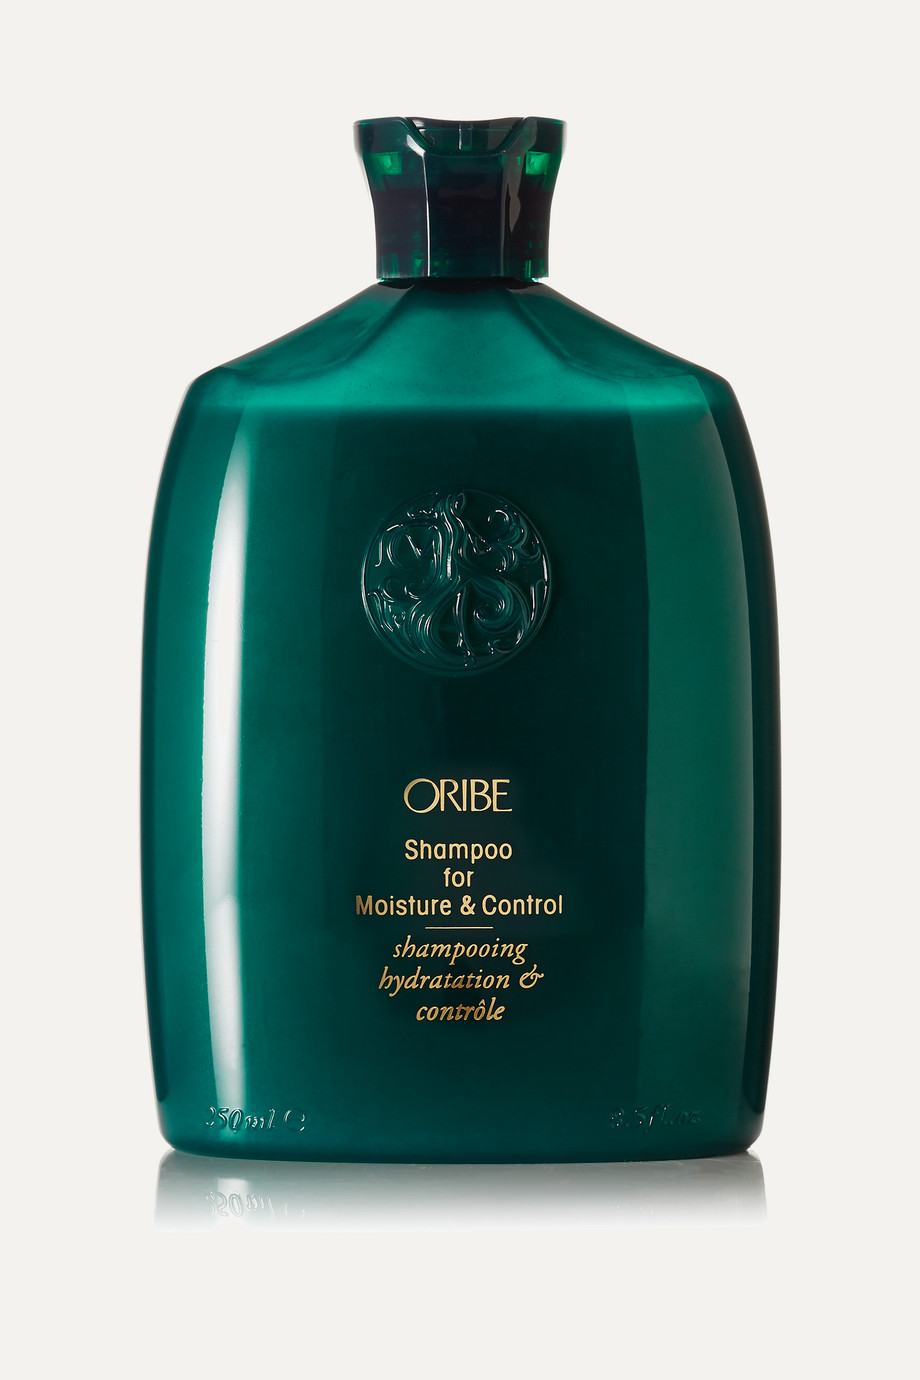 Shampoo for Moisture and Control, 250ml, by Oribe